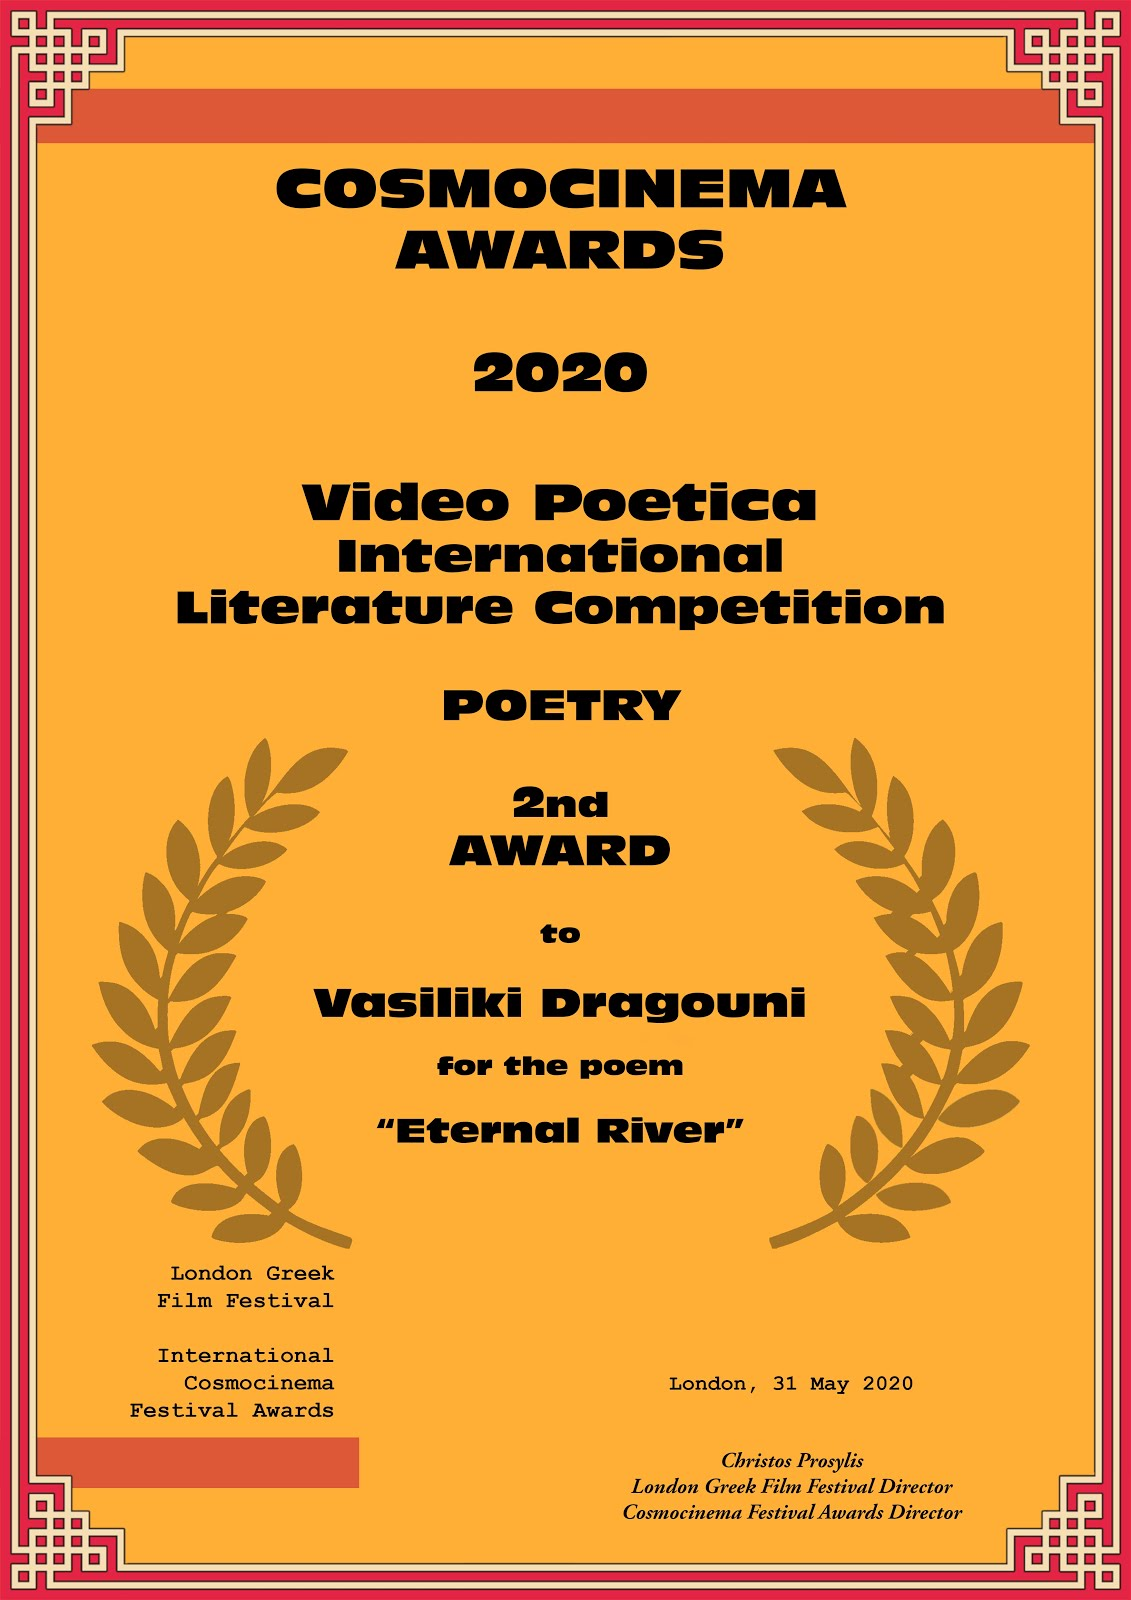 COSMOCINEMA 2020 - VIDEO POETICA AWARDS